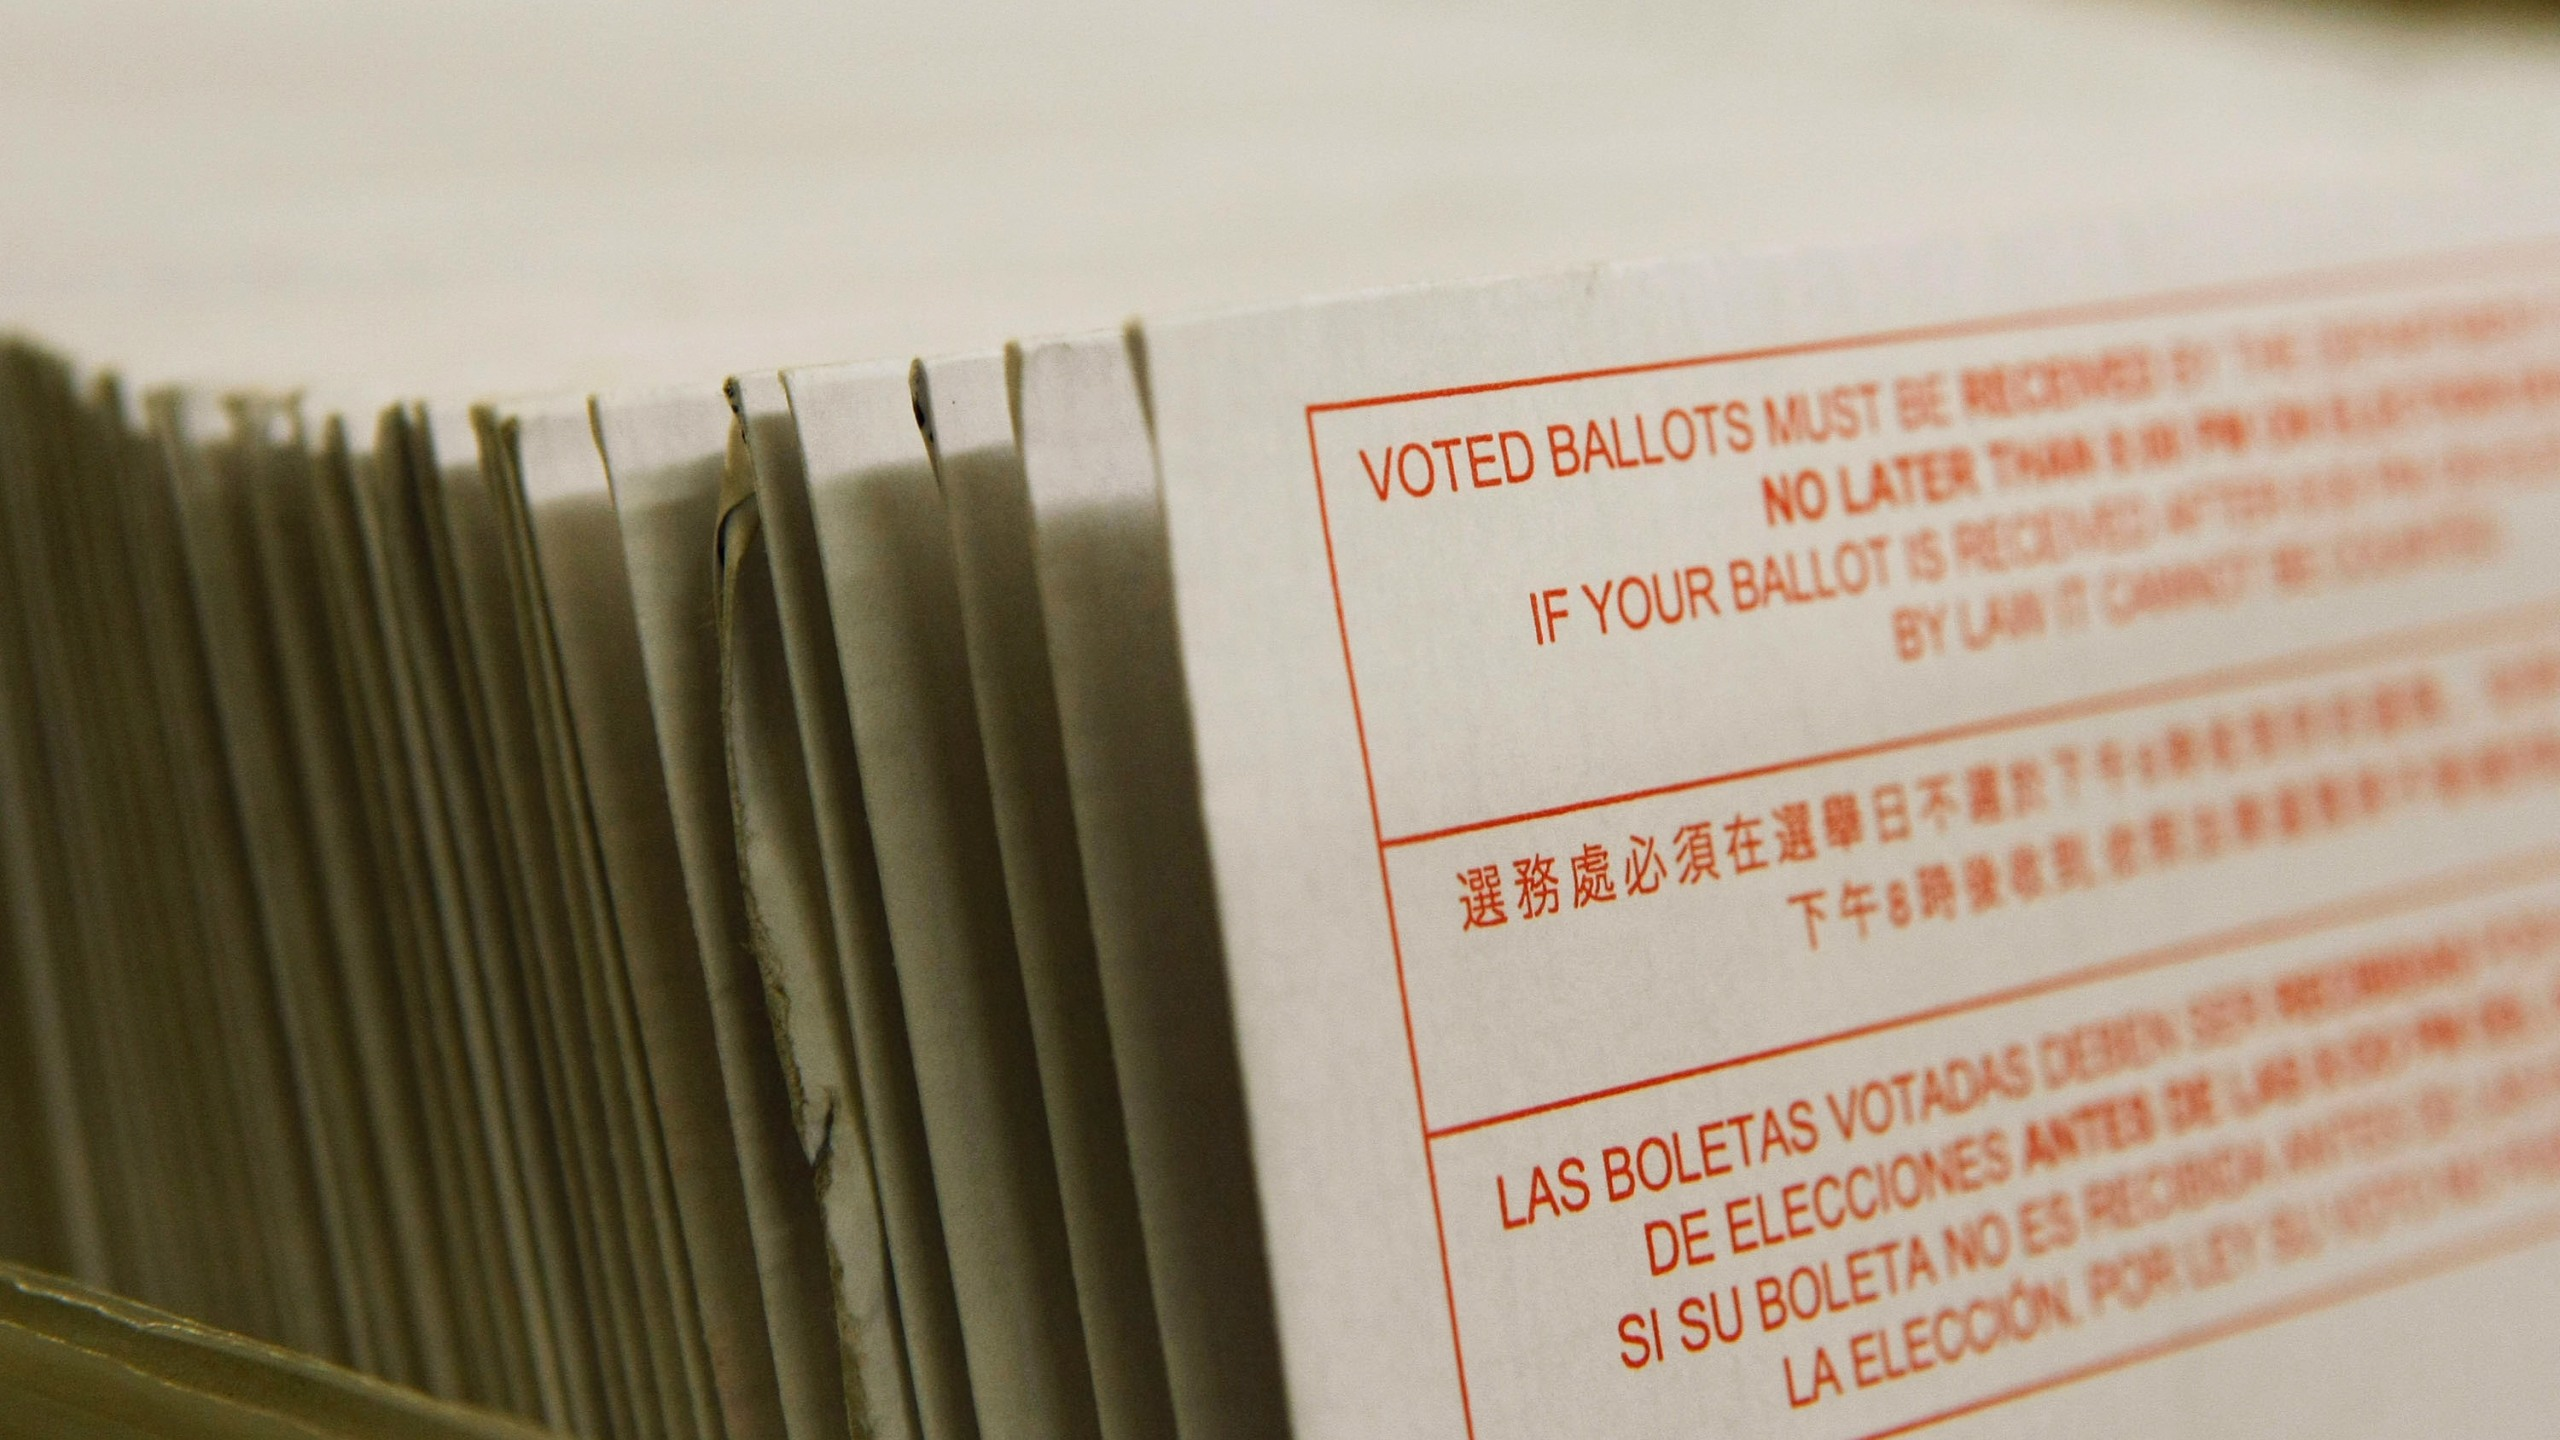 A stack of vote-by-mail ballots sit in a box after being sorted at the San Francisco Department of Elections January 24, 2008 in San Francisco. (Credit: Justin Sullivan/Getty Images)